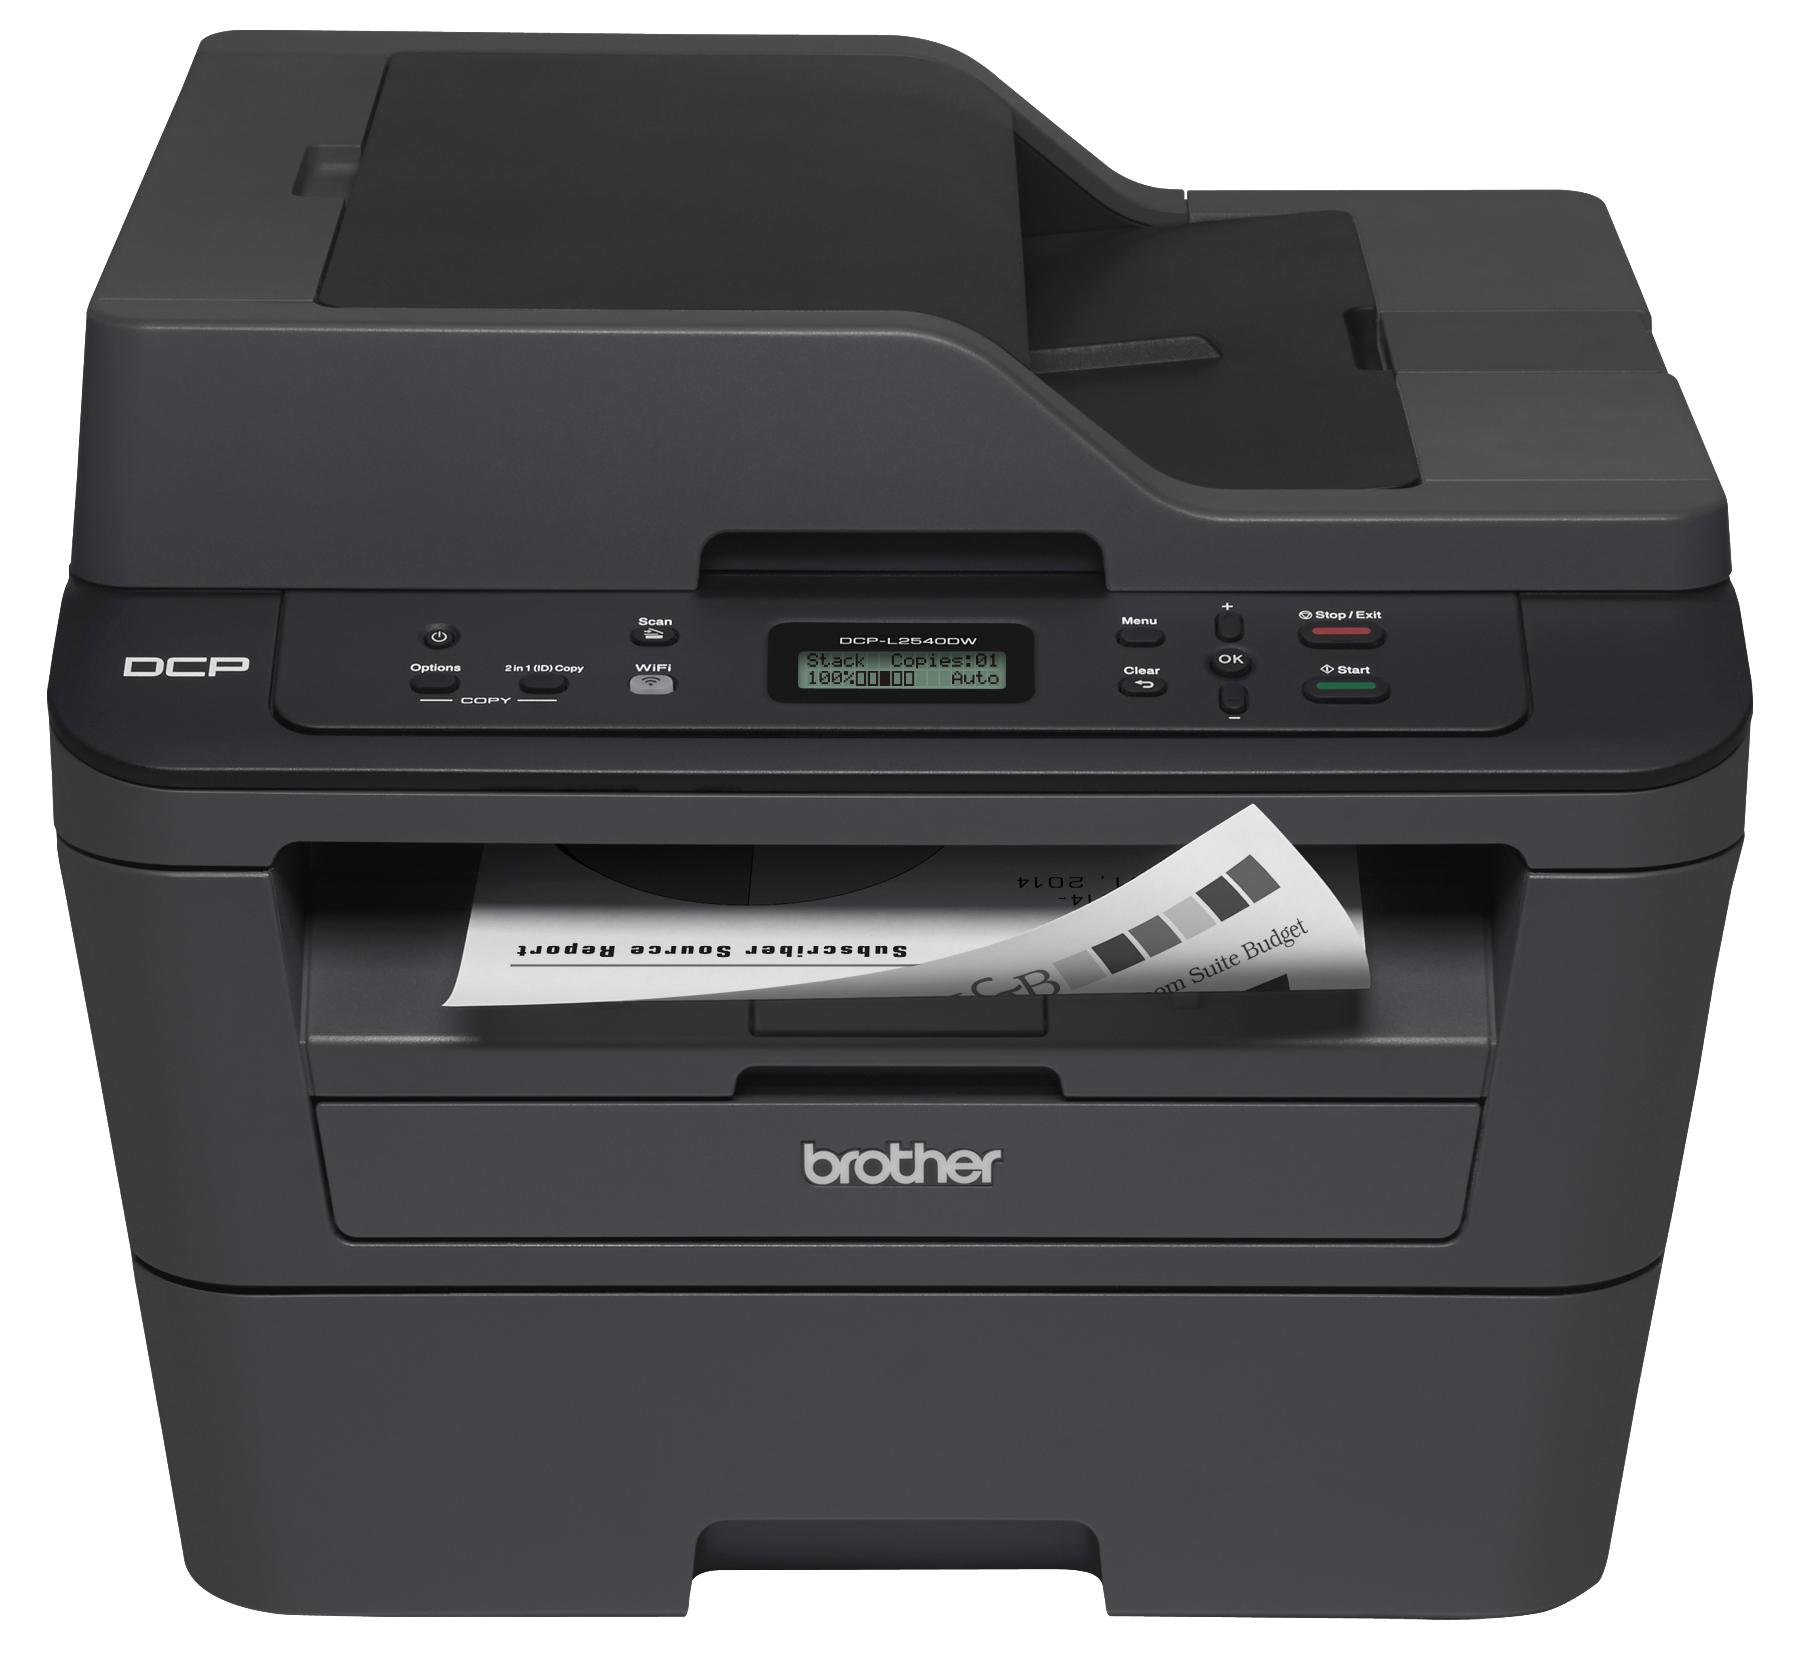 DRIVER FOR BROTHER DCP-7065DN PRINTER